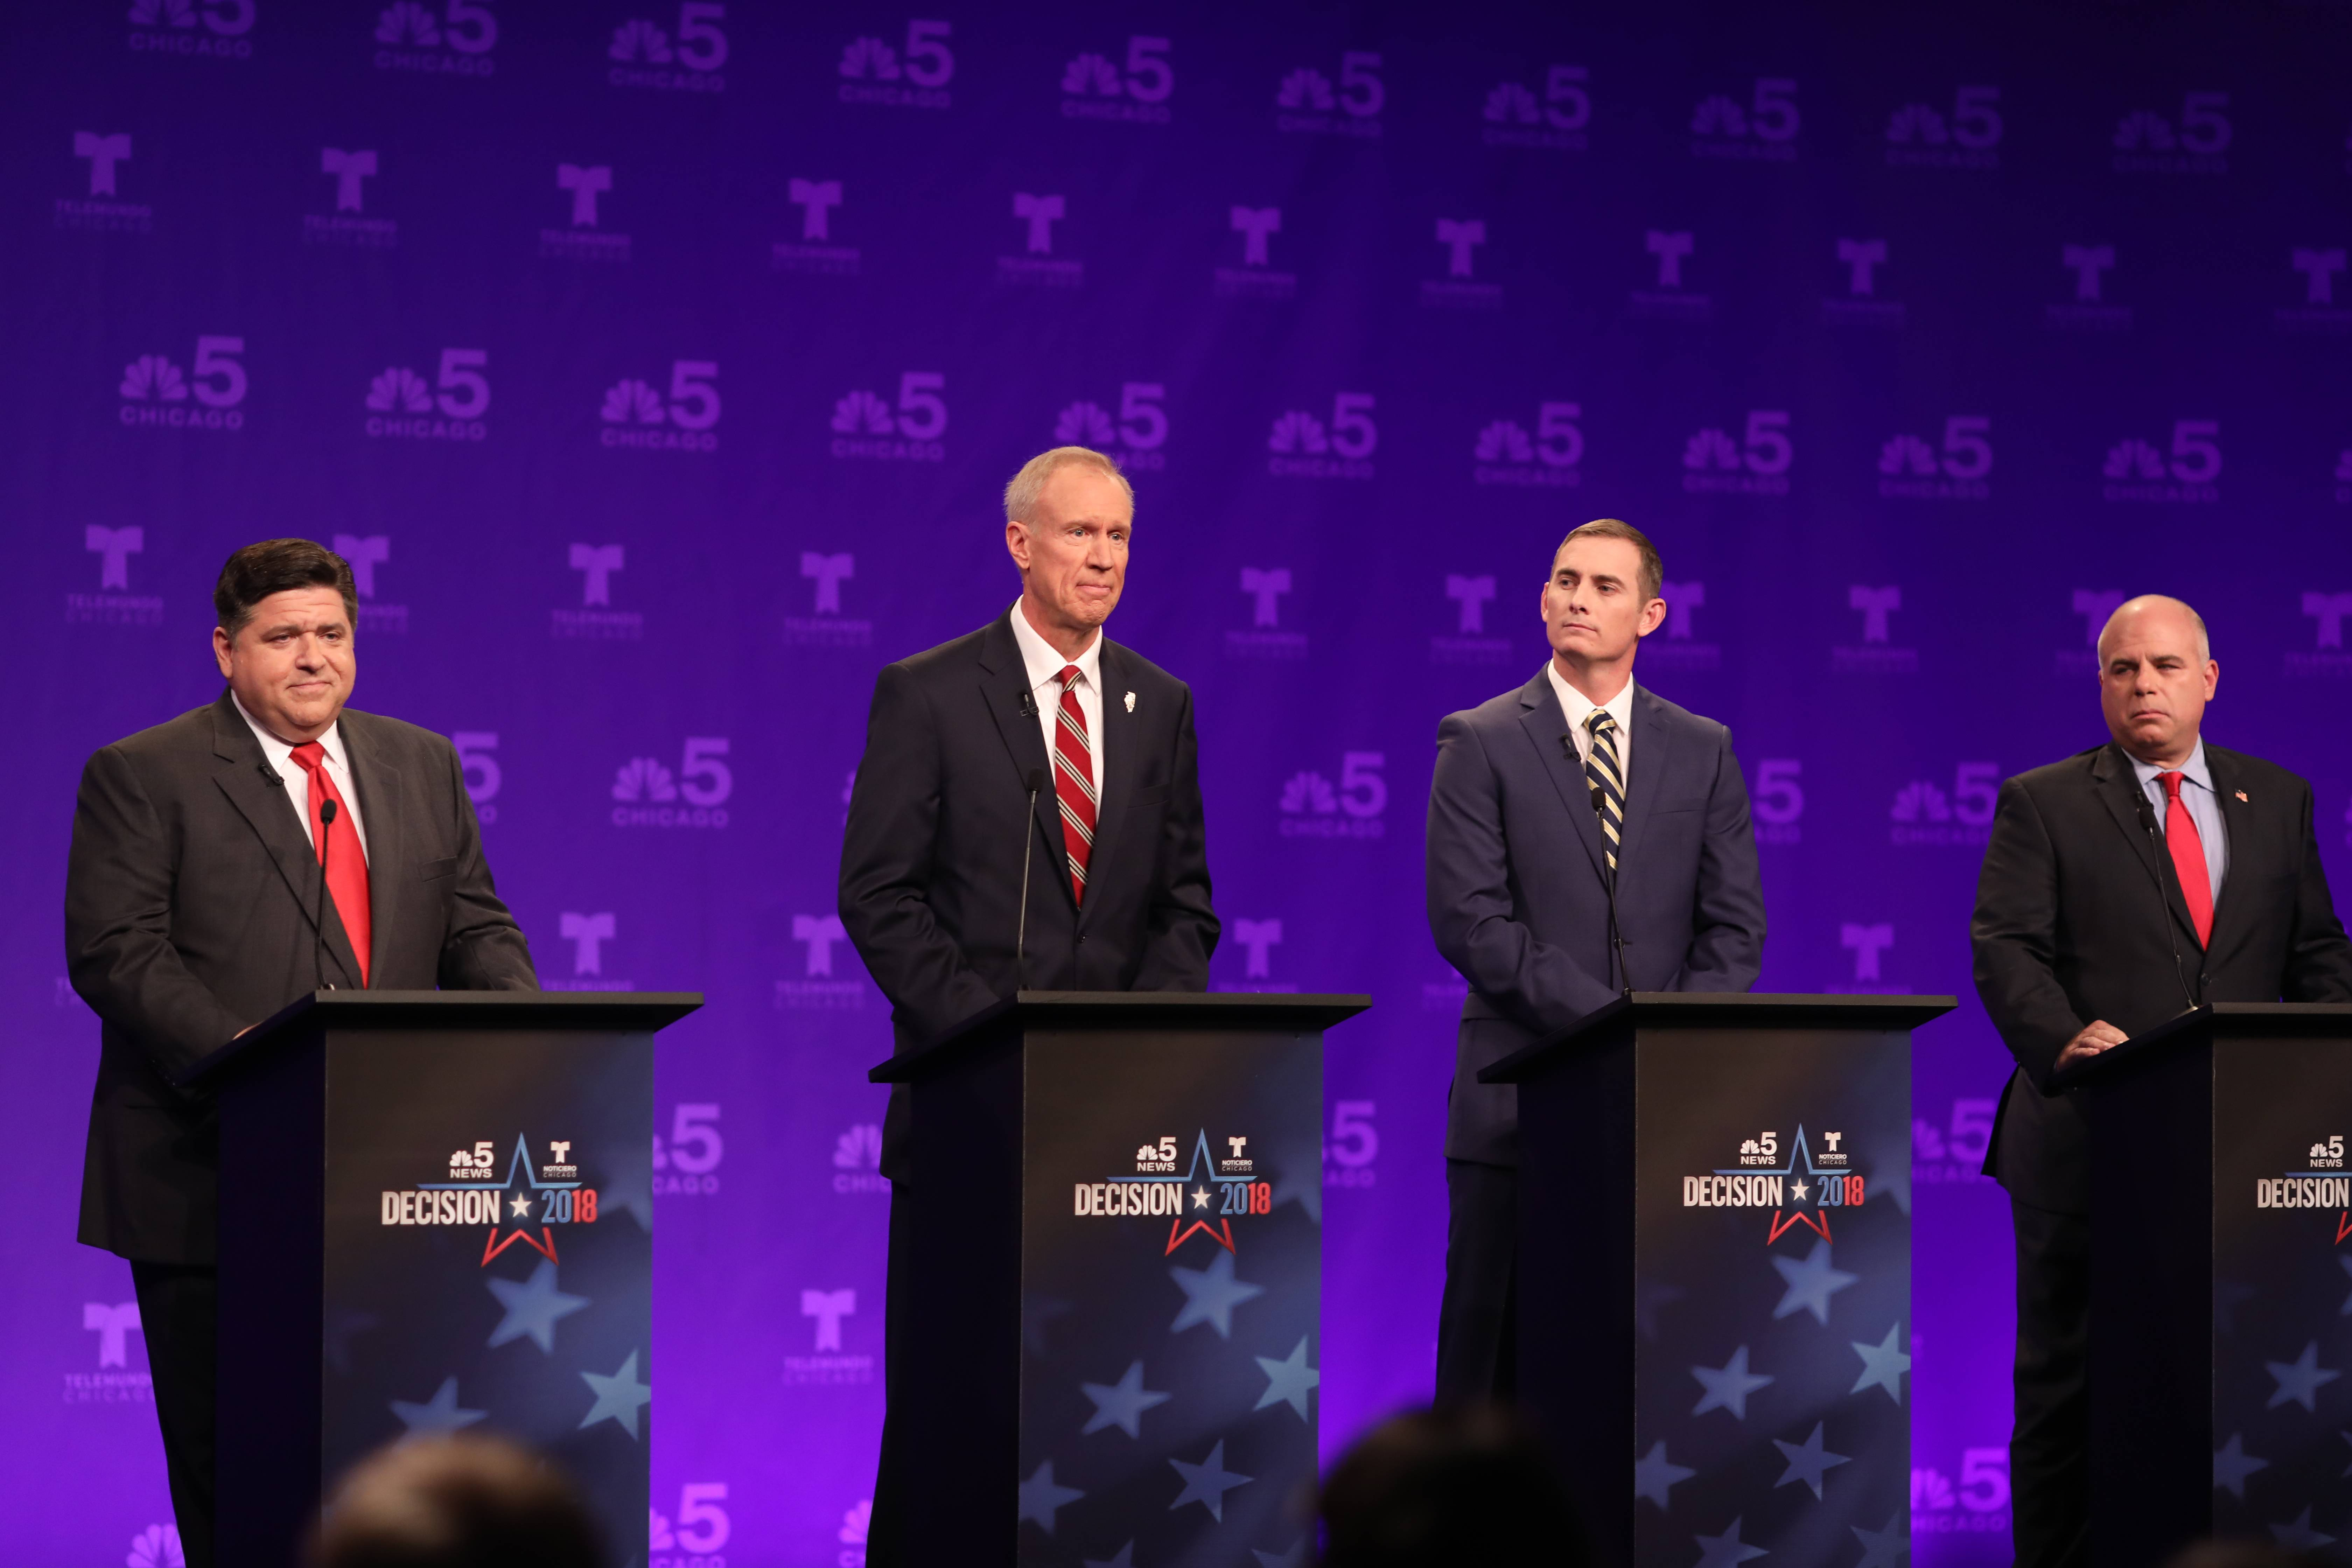 'Liar,' 'failure,' 'phony': Going gets nasty with jabs in first gubernatorial debate